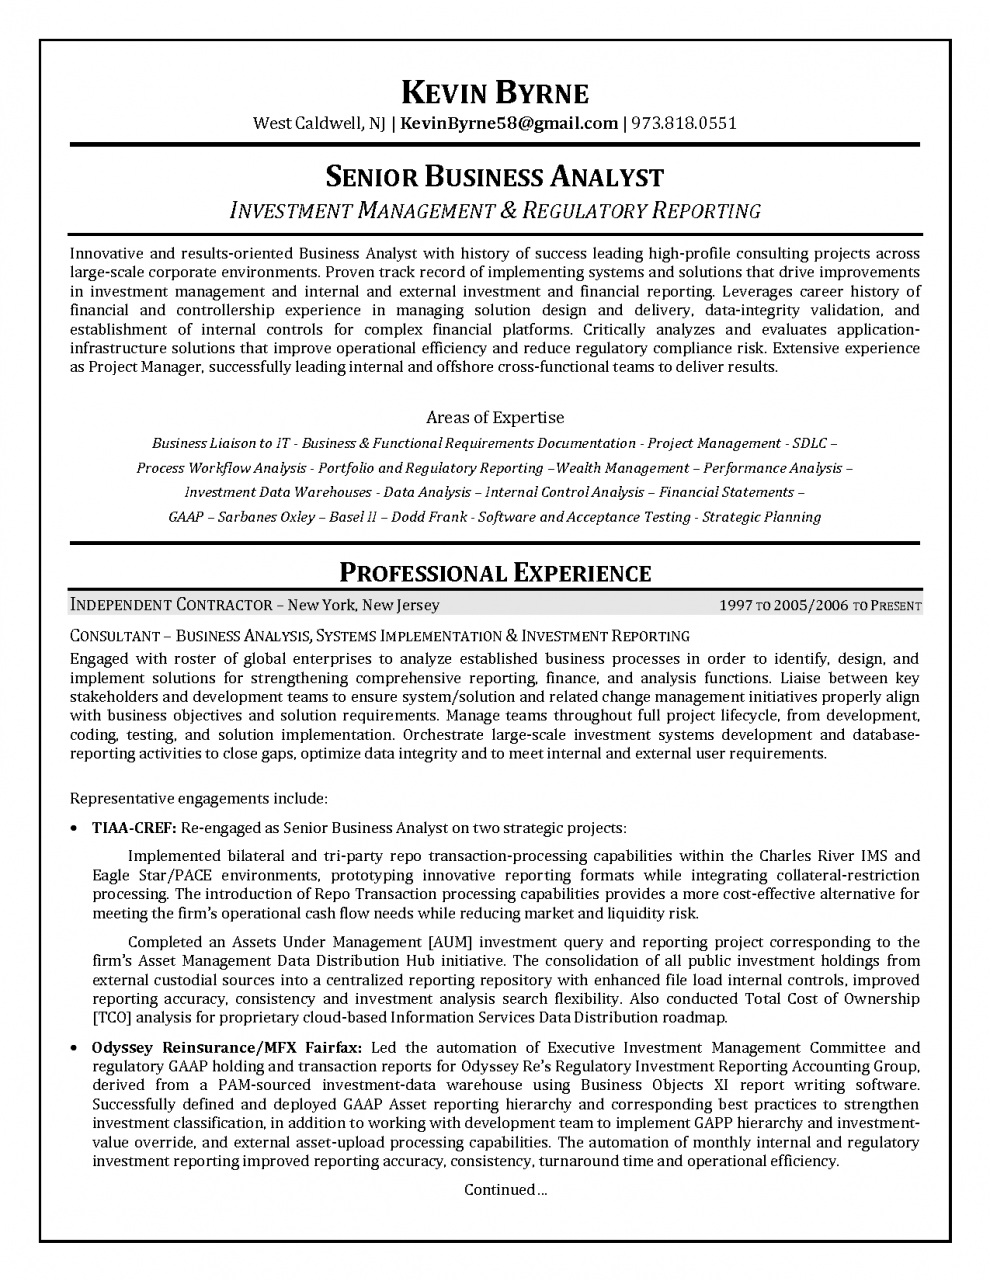 Resume. Senior Business Analyst Resume Format Business